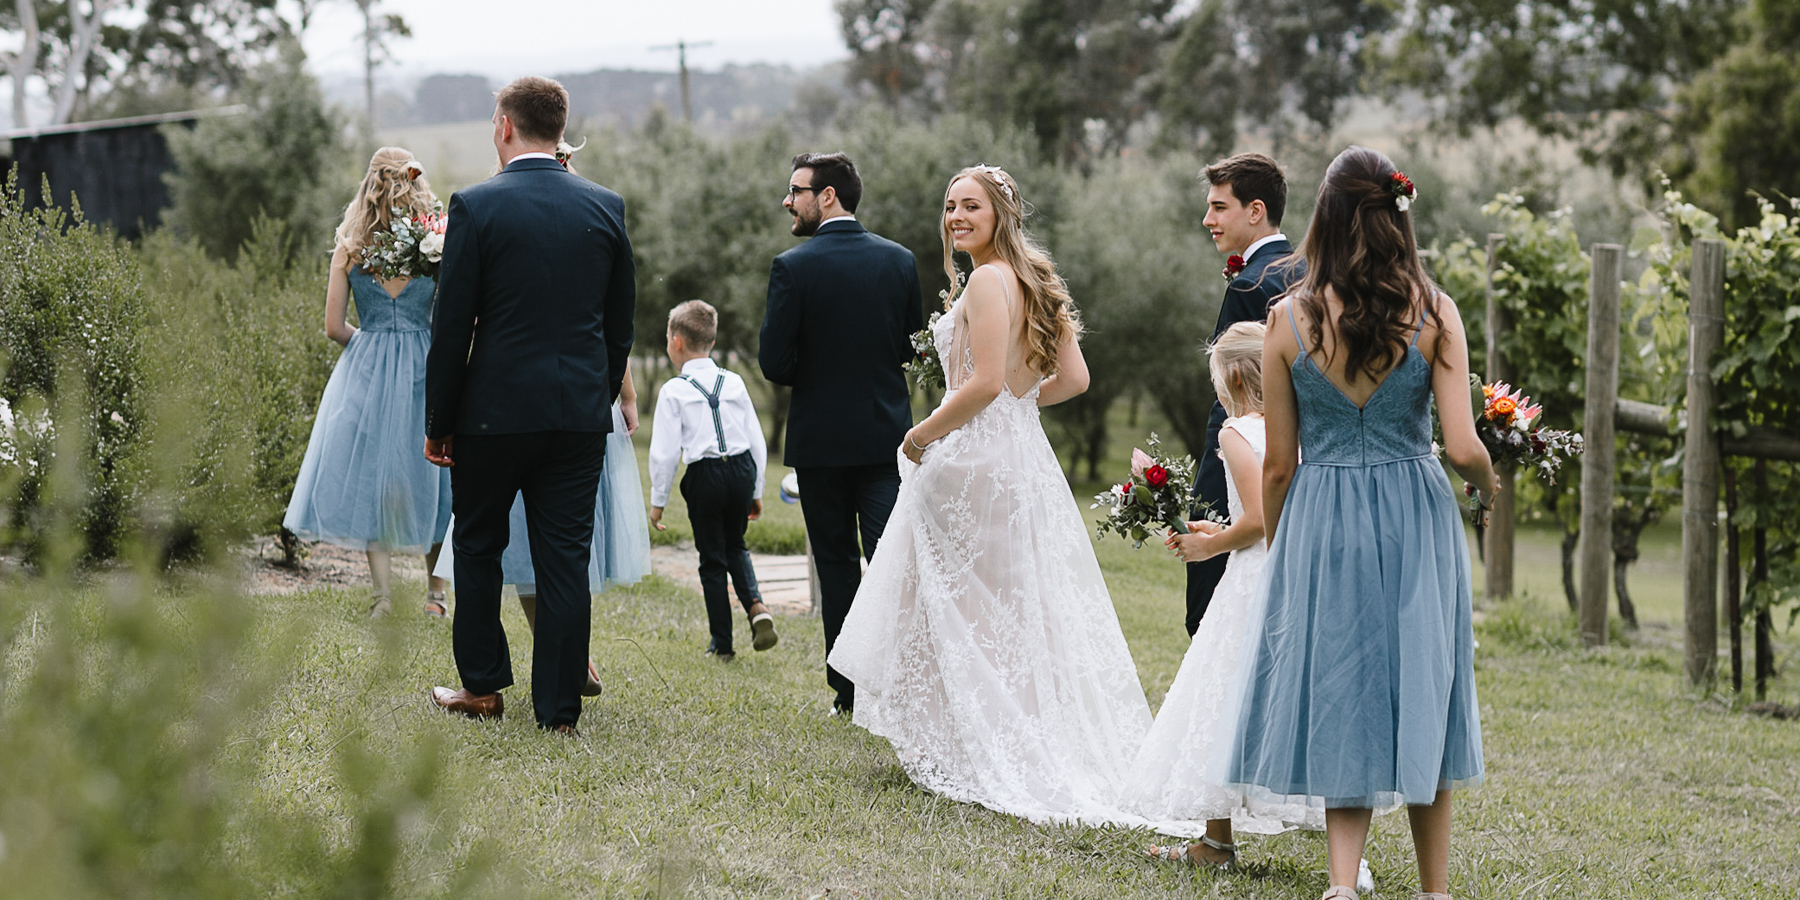 Brandy-Creek-Winery-Drouin-Bohemian-Prints-Melbourne-Wedding-Photography-071